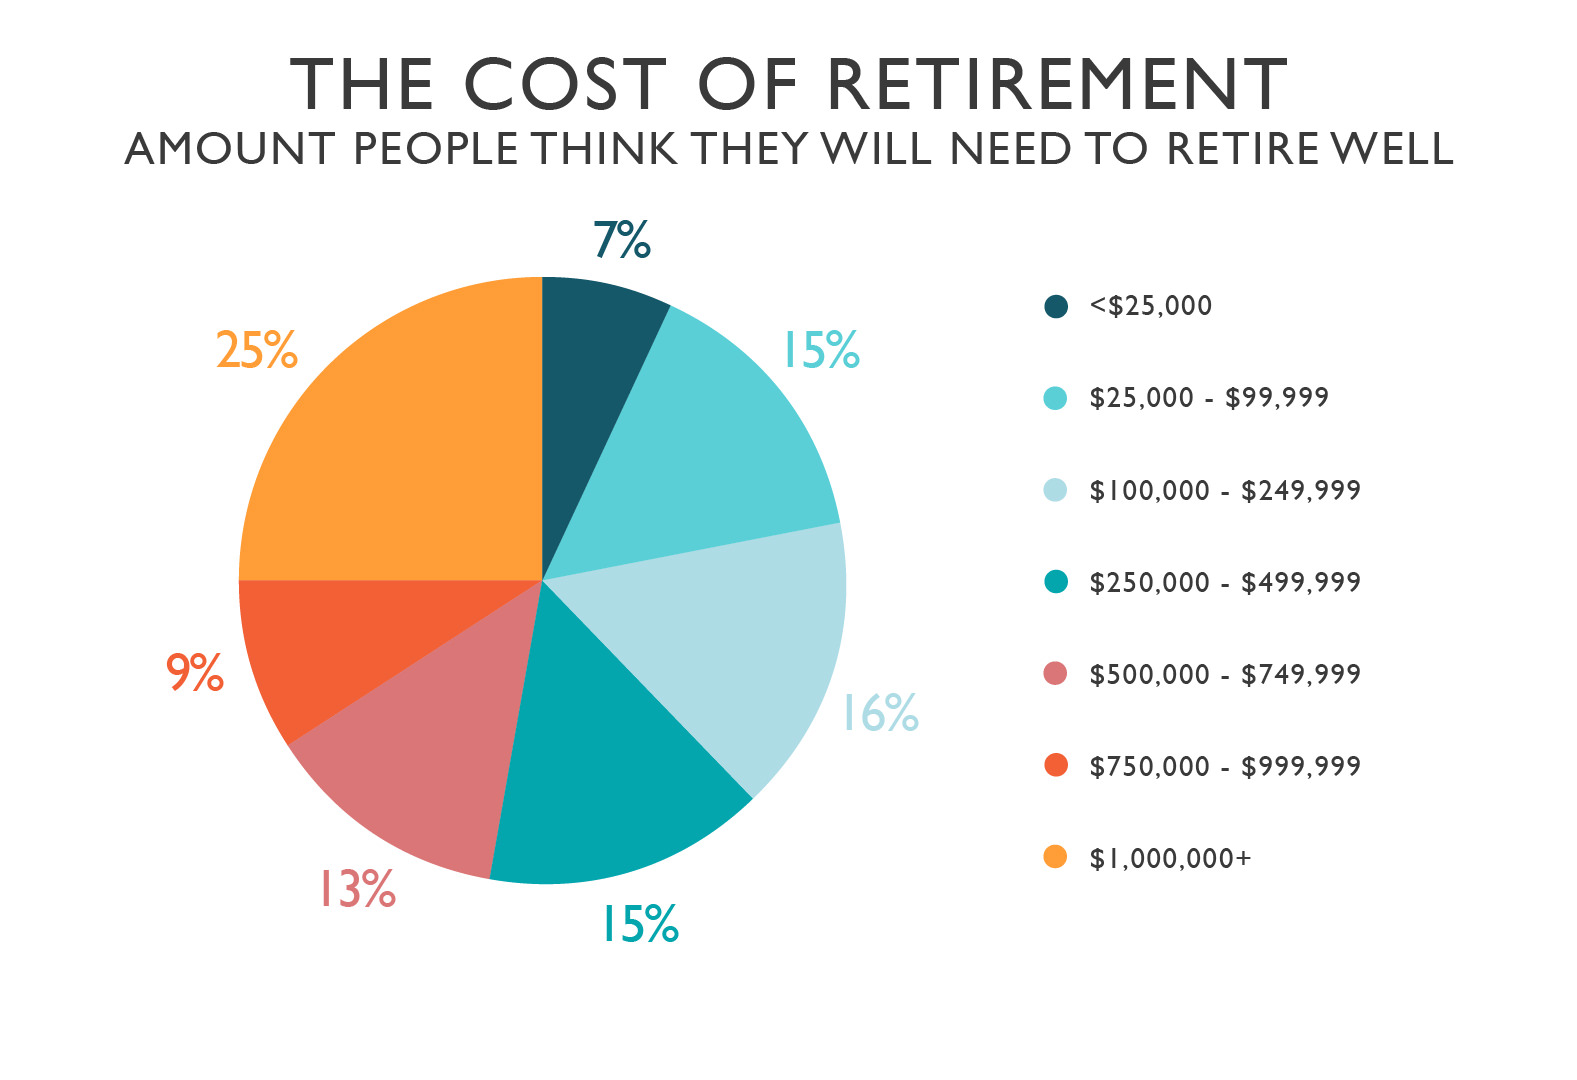 The amount of money people think they will need to retire